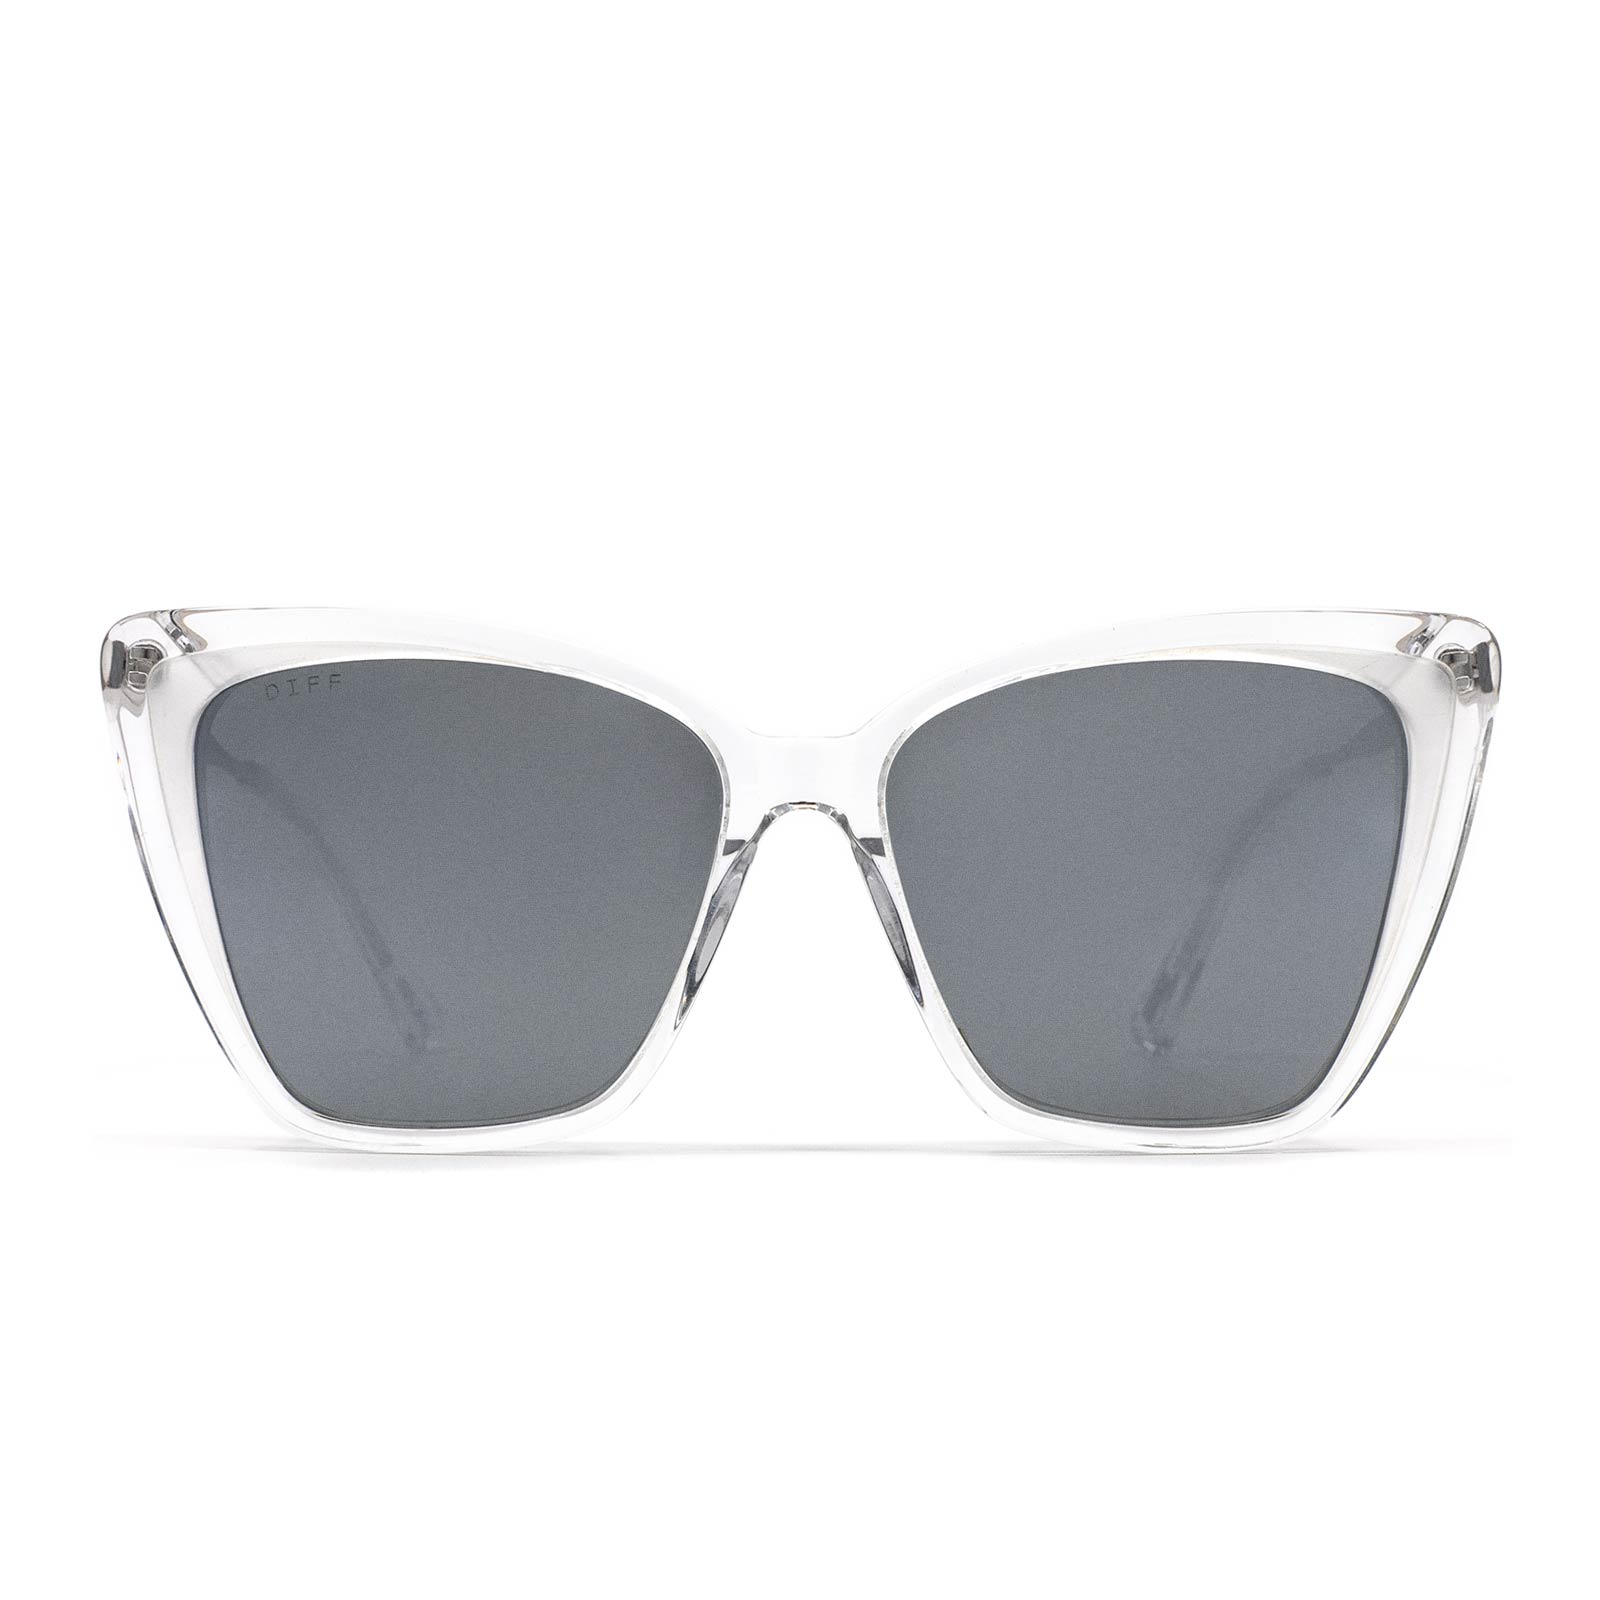 Becky II sunglasses with clear frame and grey flash lens- front view